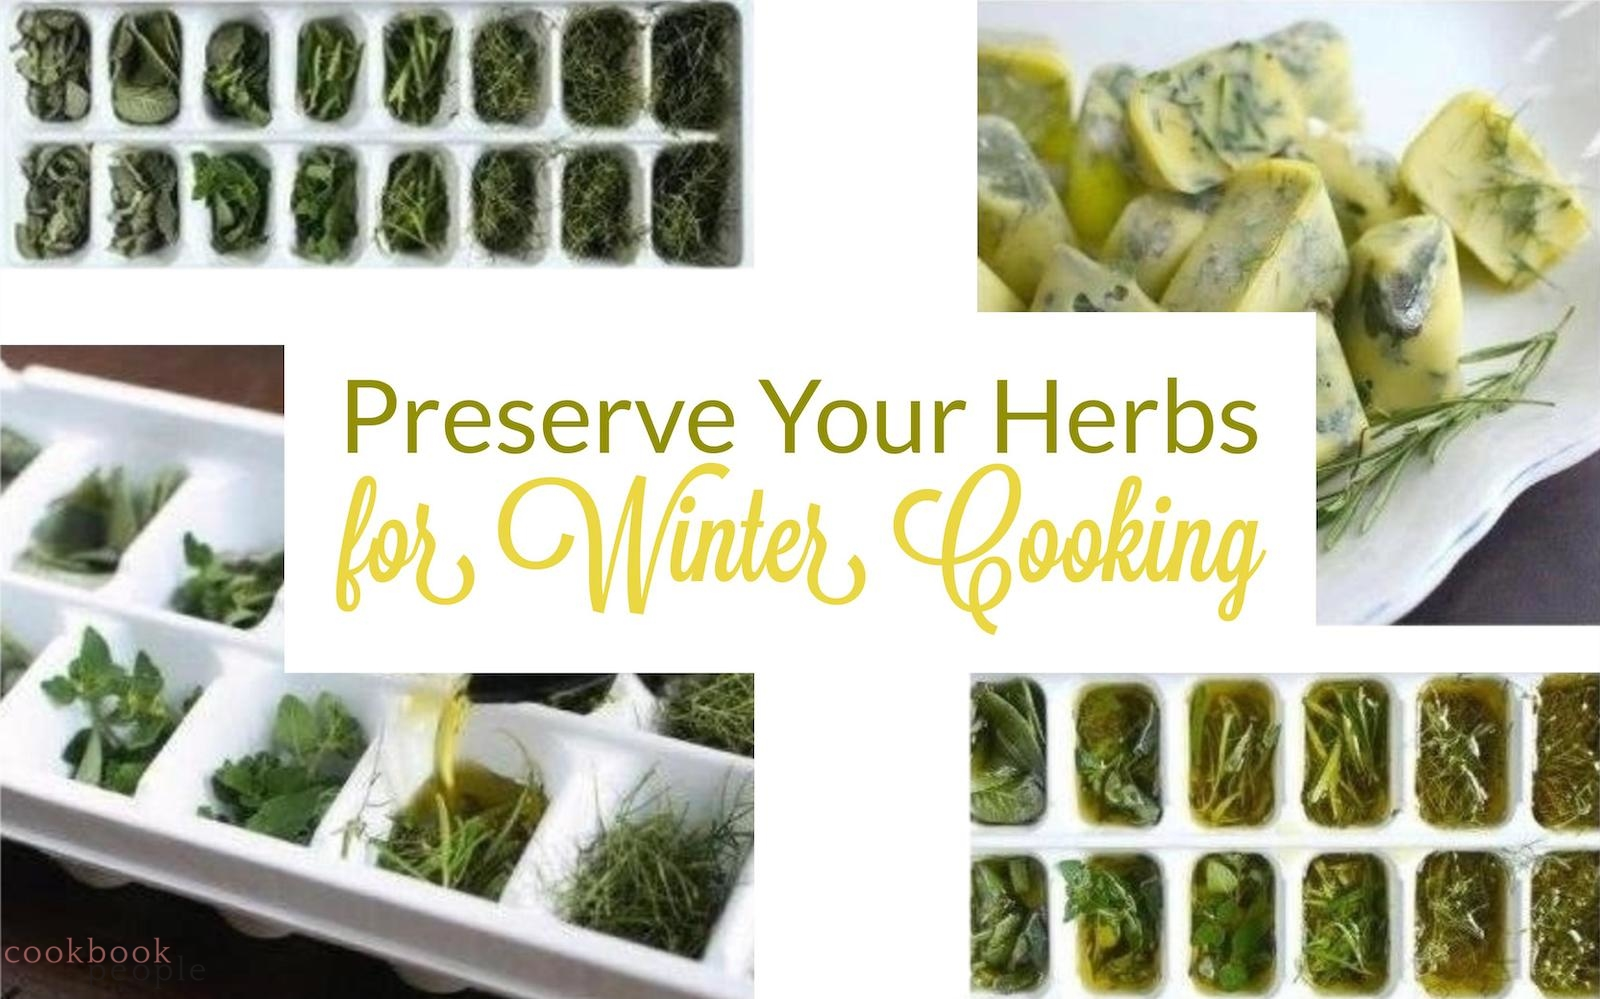 herbs in ice-cube containers covered with olive oil. Text: Preserve Your Herbs for Winter Cooking